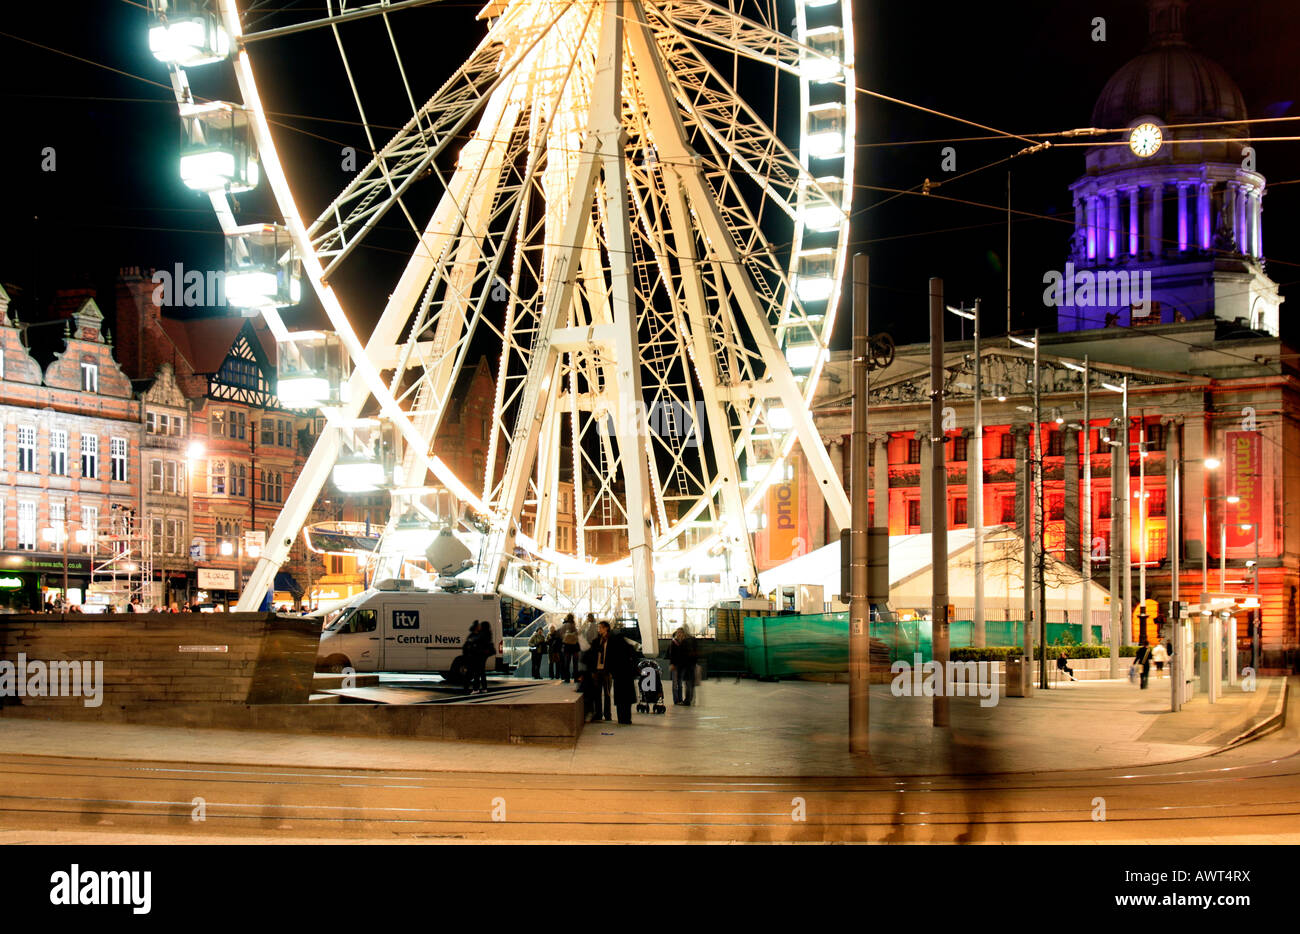 Nottingham Eye with Nottinghams Council House in the background. The Nottingham Eye market Square Nottingham UK - Stock Image